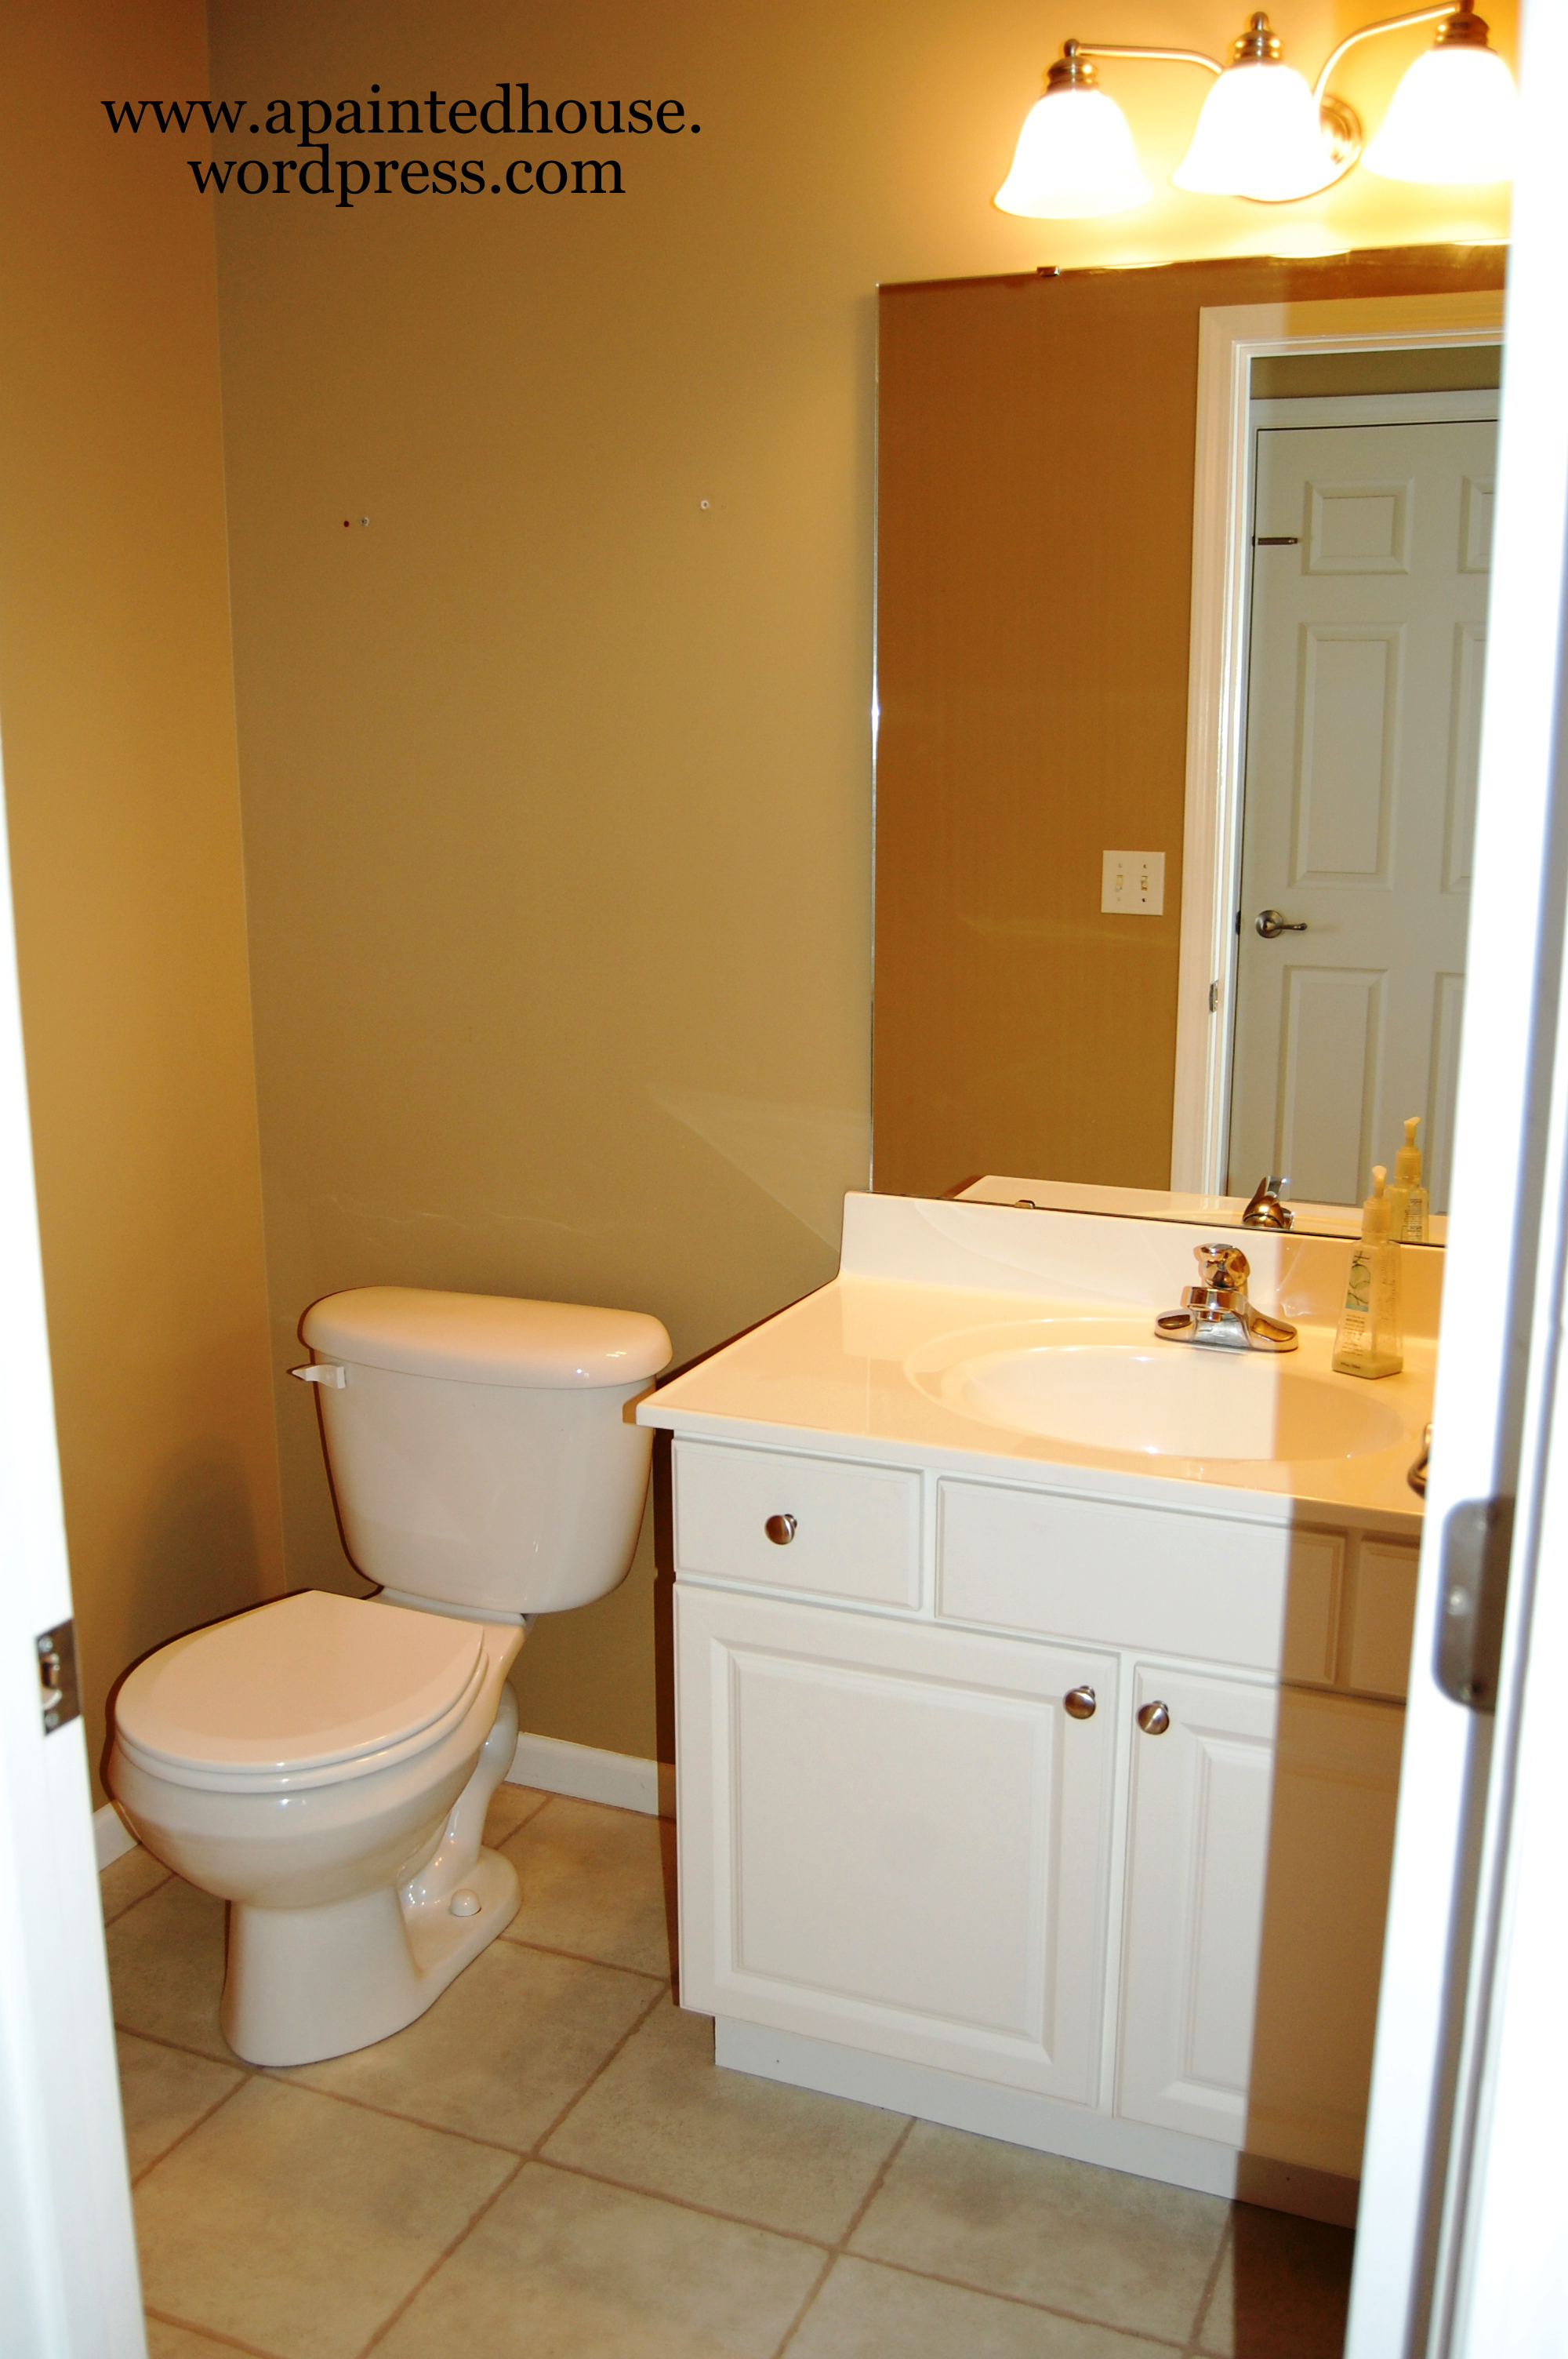 Cute small bathrooms - Room Reveal Half Bath A Painted House